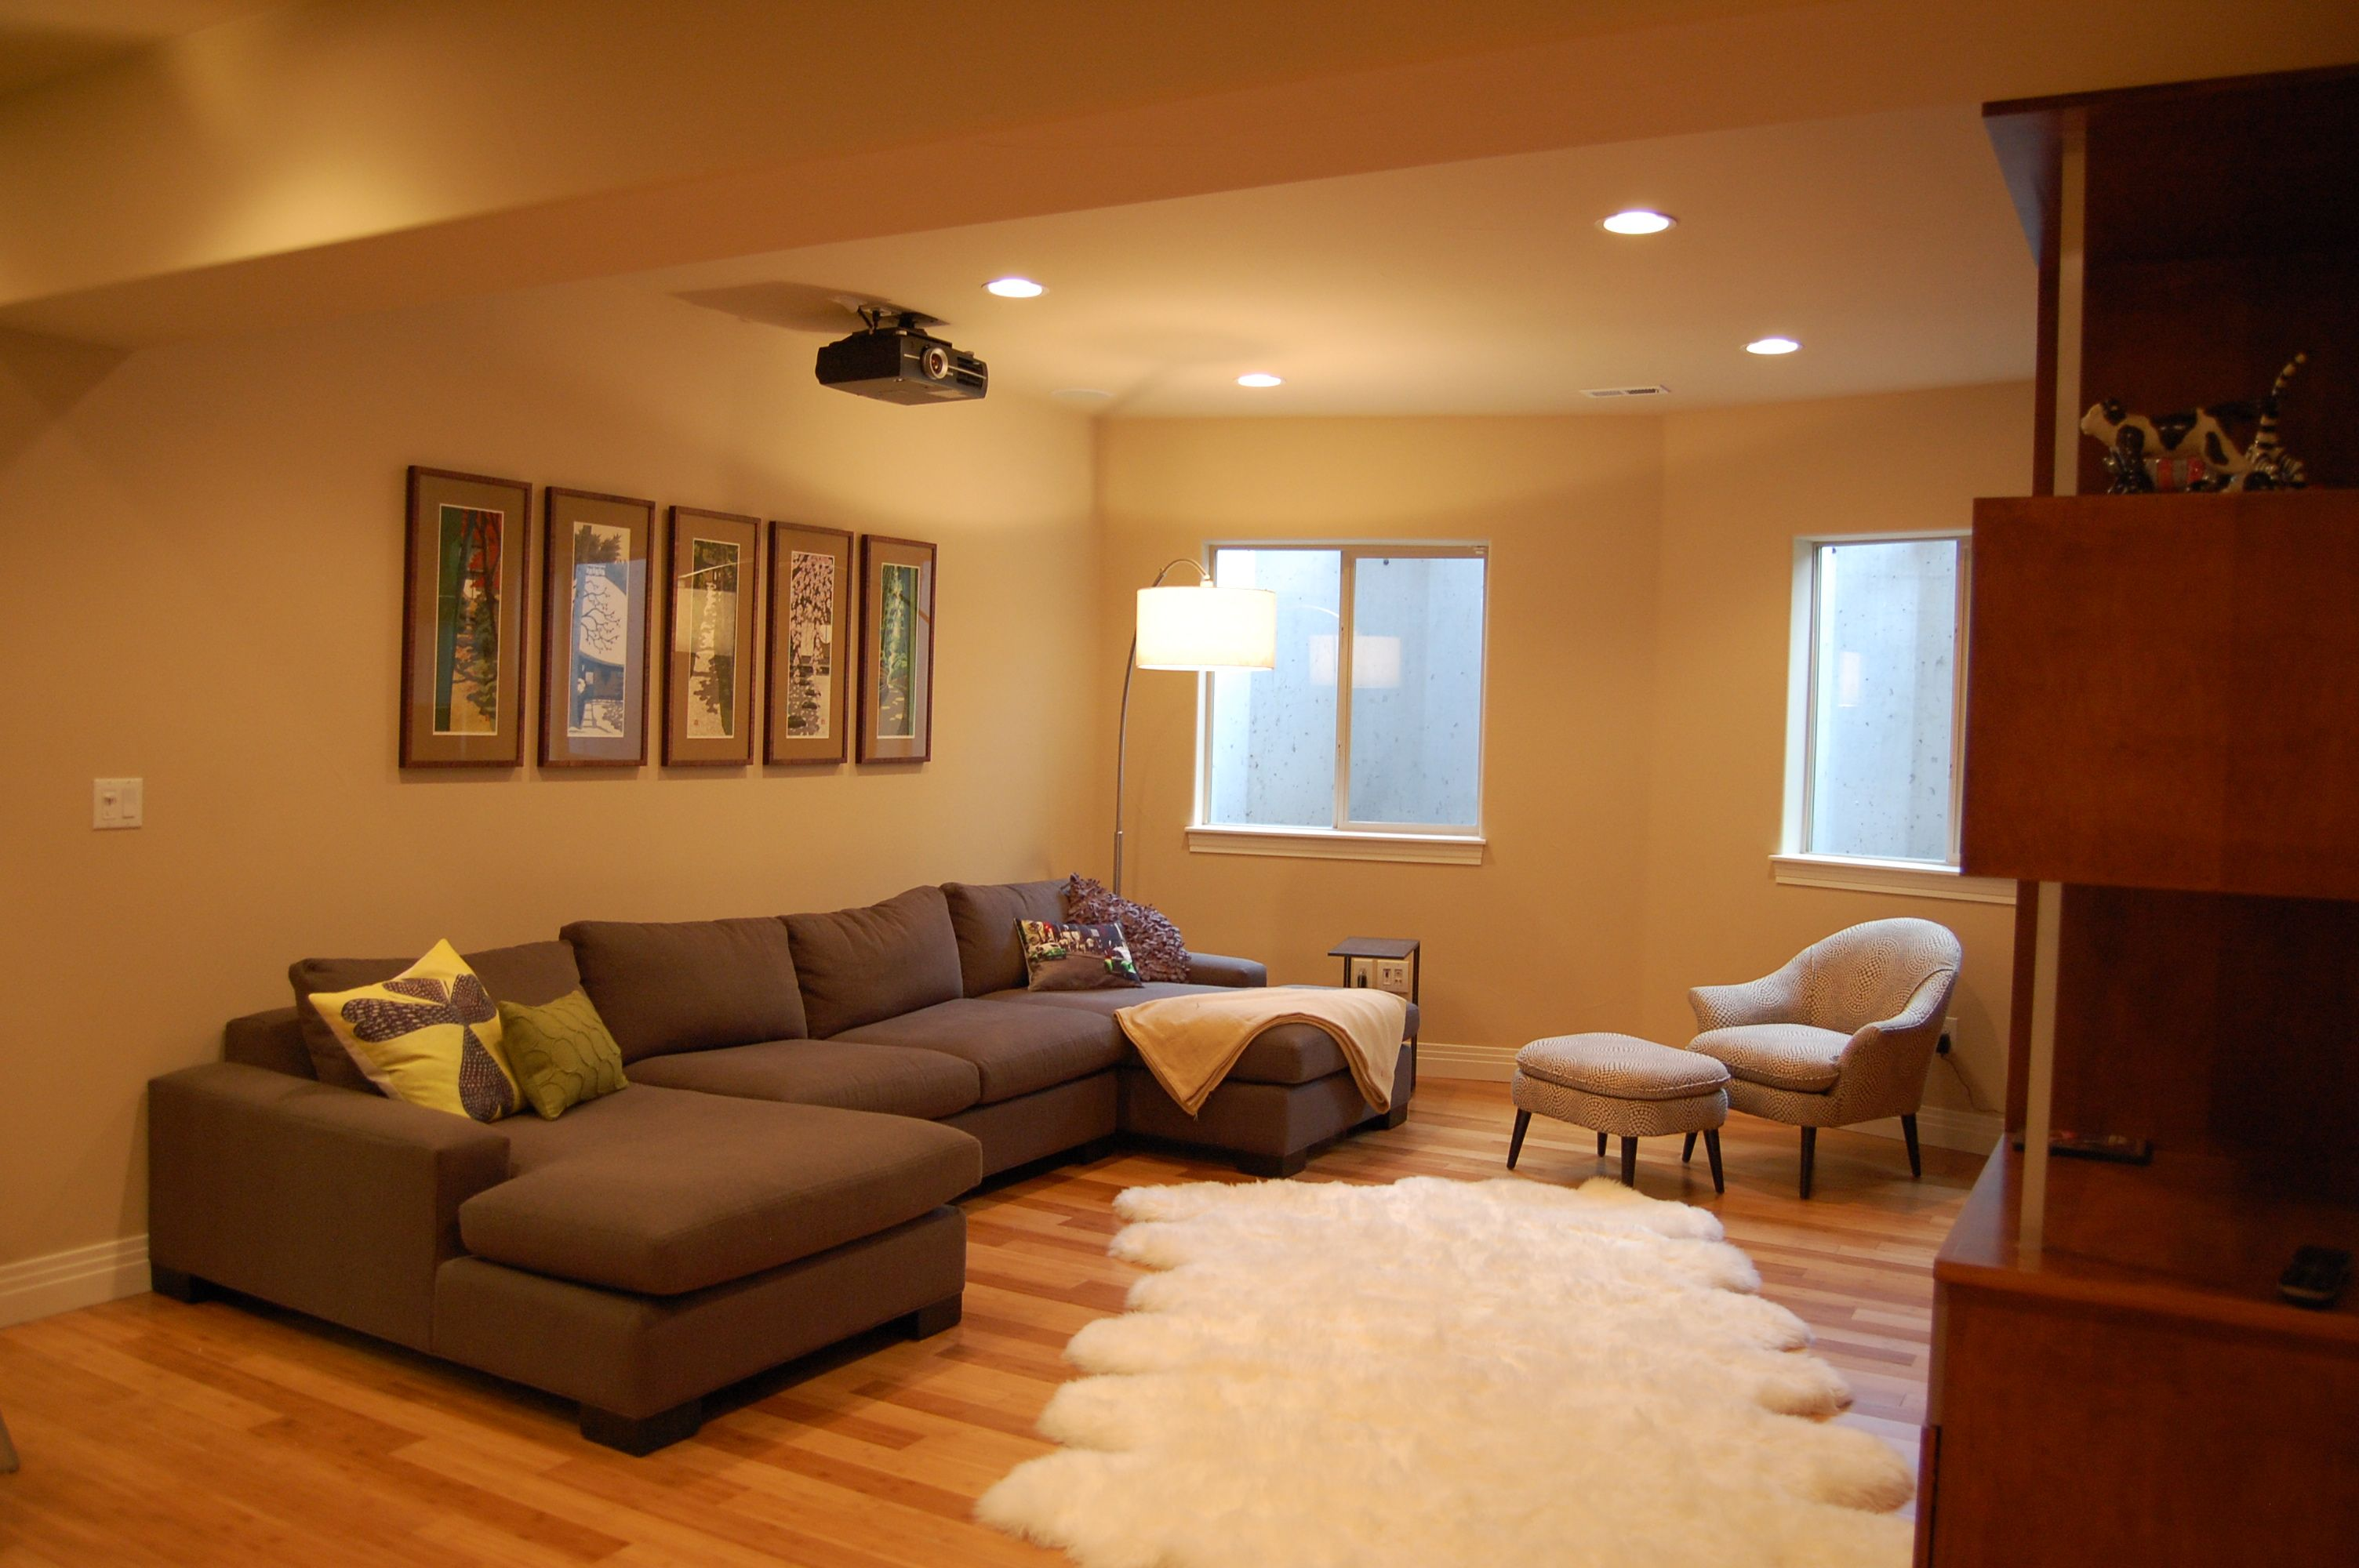 Basement Living Room Designs Custom 23 Most Popular Small Basement Ideas Decor And Remodel  Man Inspiration